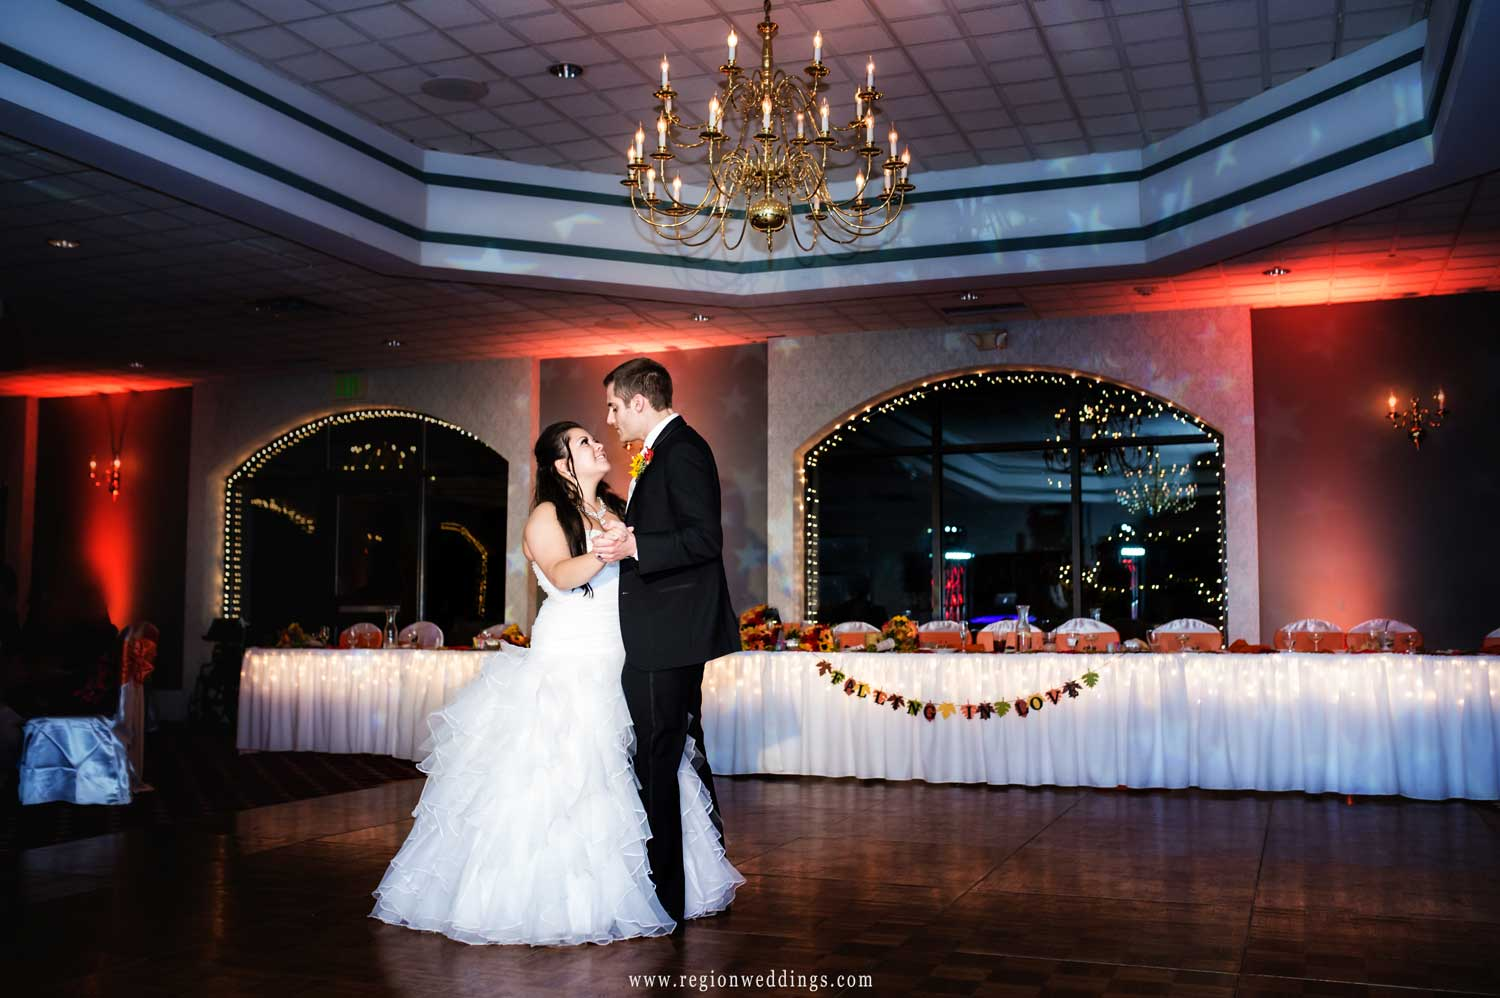 First dance for the bride and groom at Cloister In The Woods reception venue.